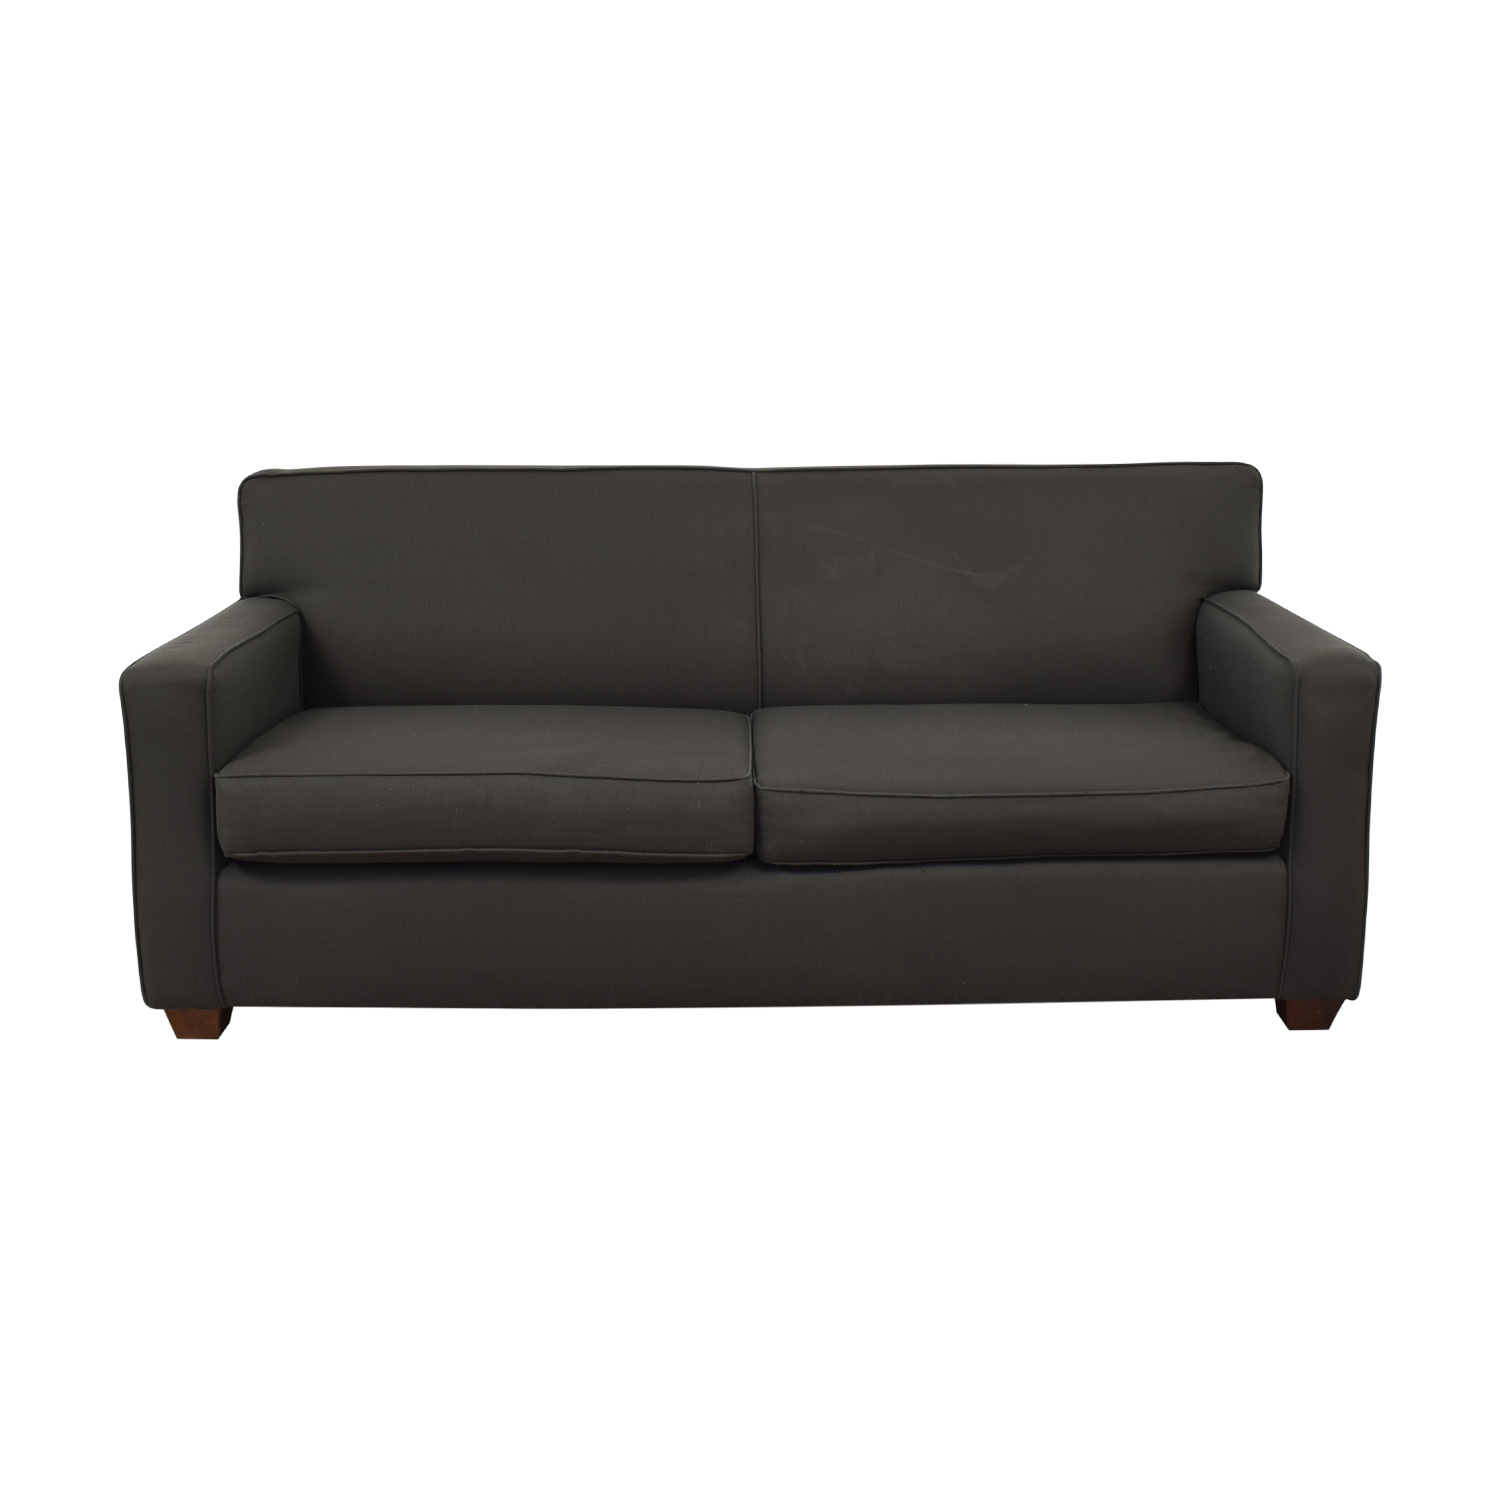 West Elm West Elm Modern Club Sofa price